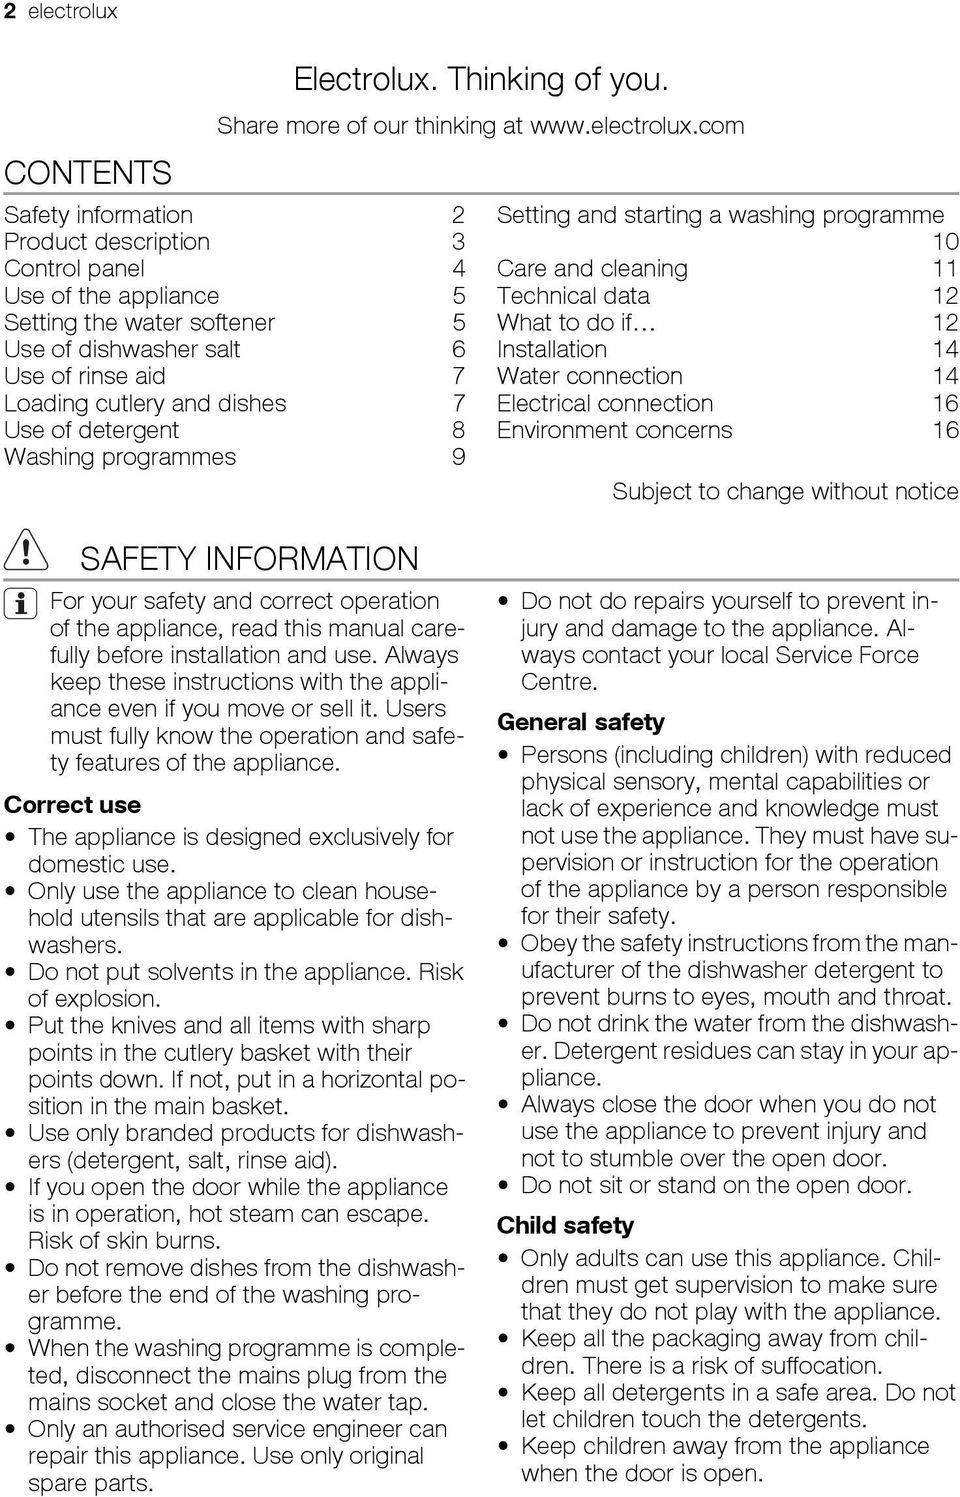 com Safety information 2 Product description 3 Control panel 4 Use of the appliance 5 Setting the water softener 5 Use of dishwasher salt 6 Use of rinse aid 7 Loading cutlery and dishes 7 Use of